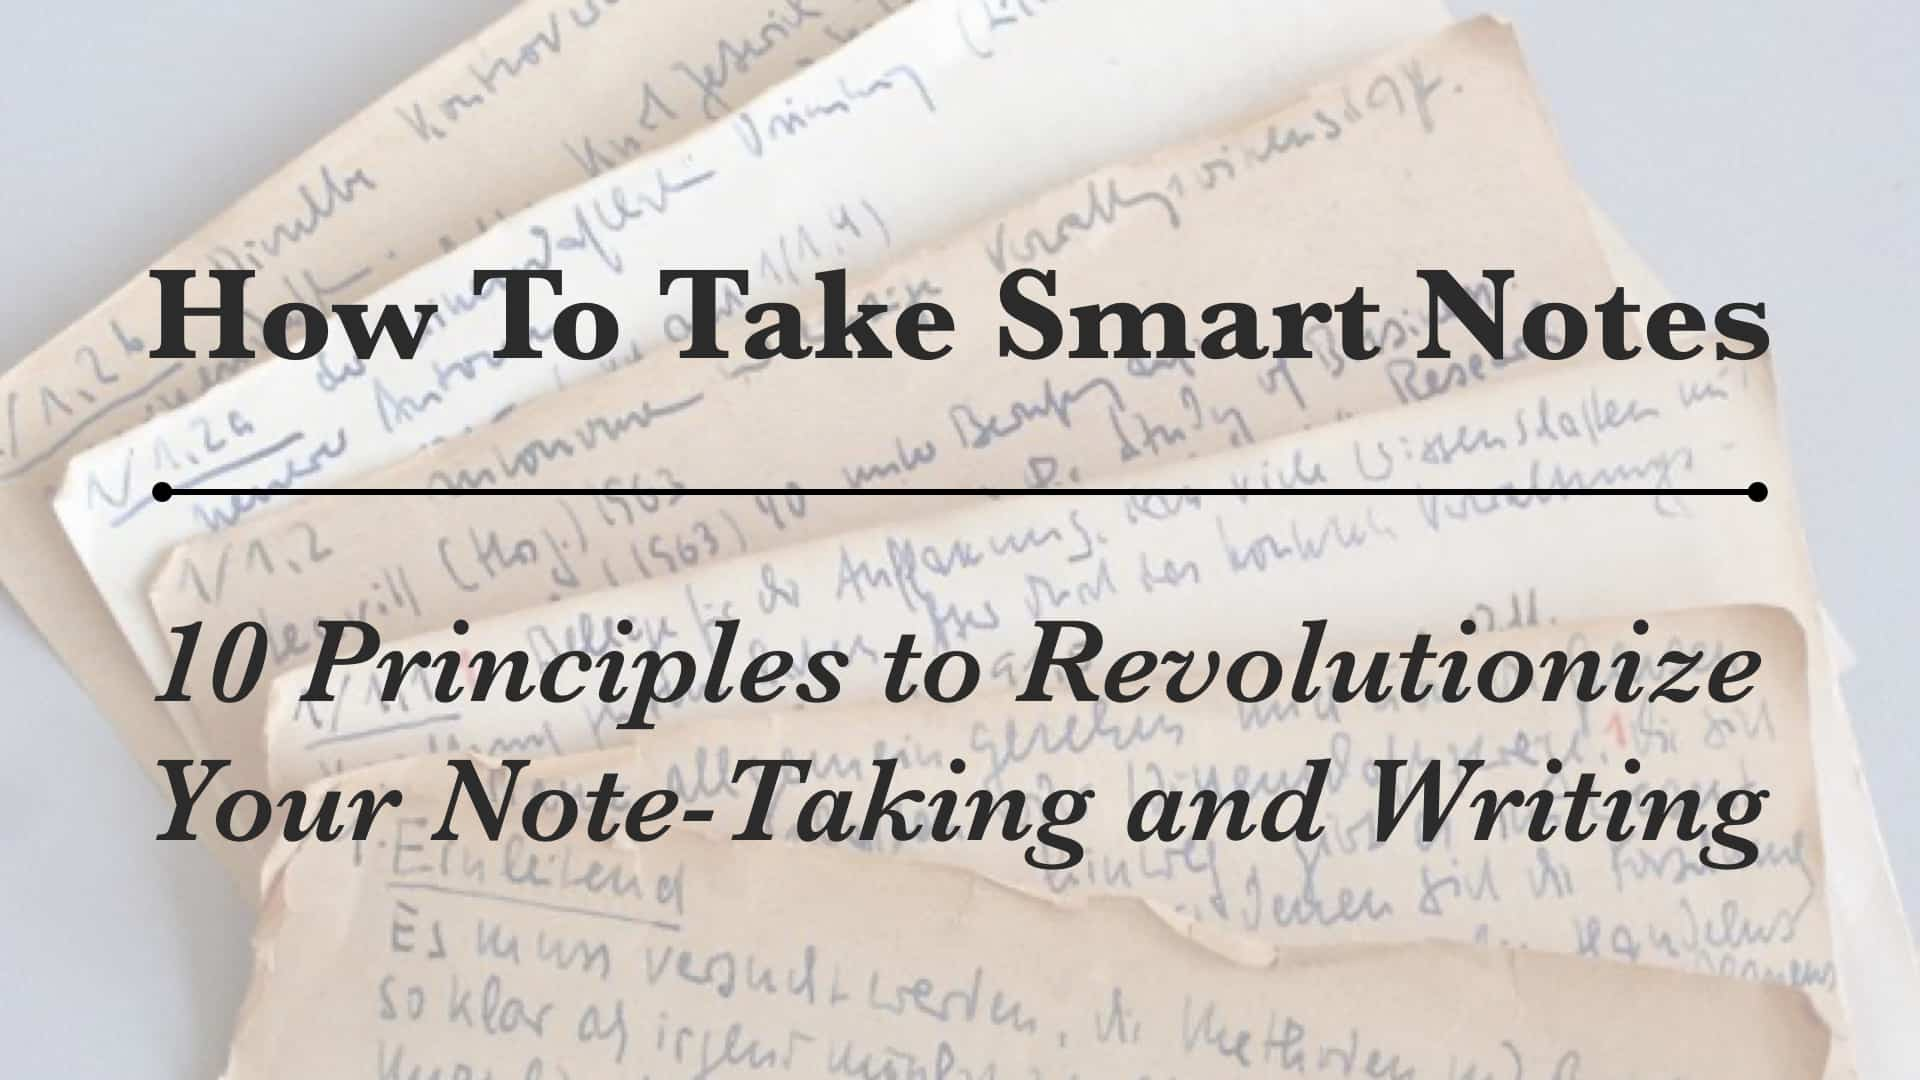 How To Take Smart Notes 21 Principles to Revolutionize Your Note ...